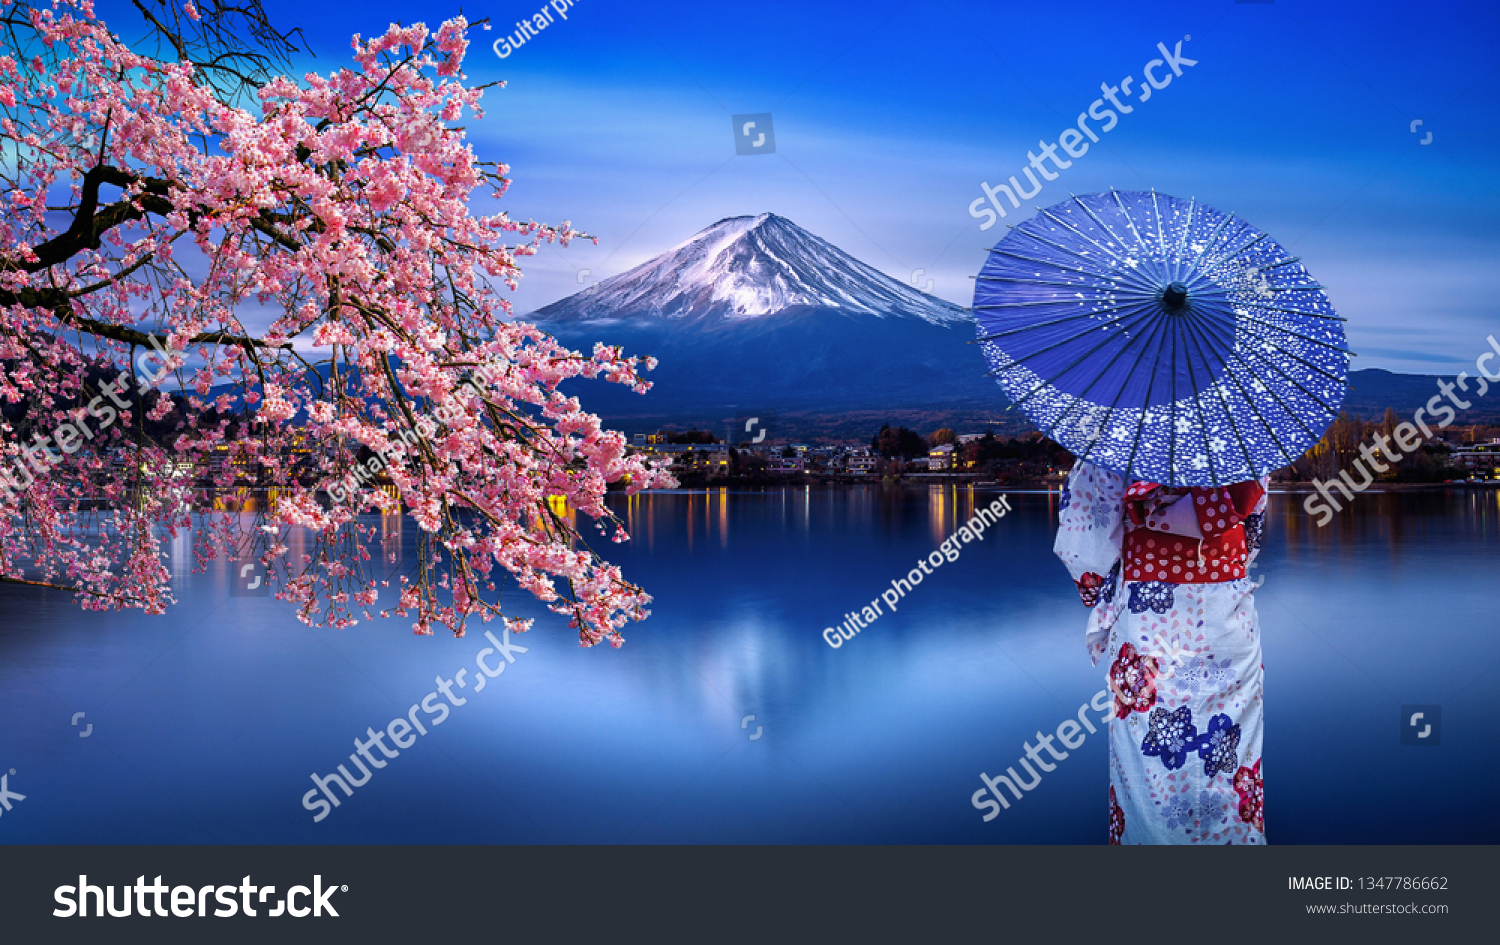 Asian woman wearing japanese traditional kimono at Fuji mountain and cherry blossom, Kawaguchiko lake in Japan. #1347786662